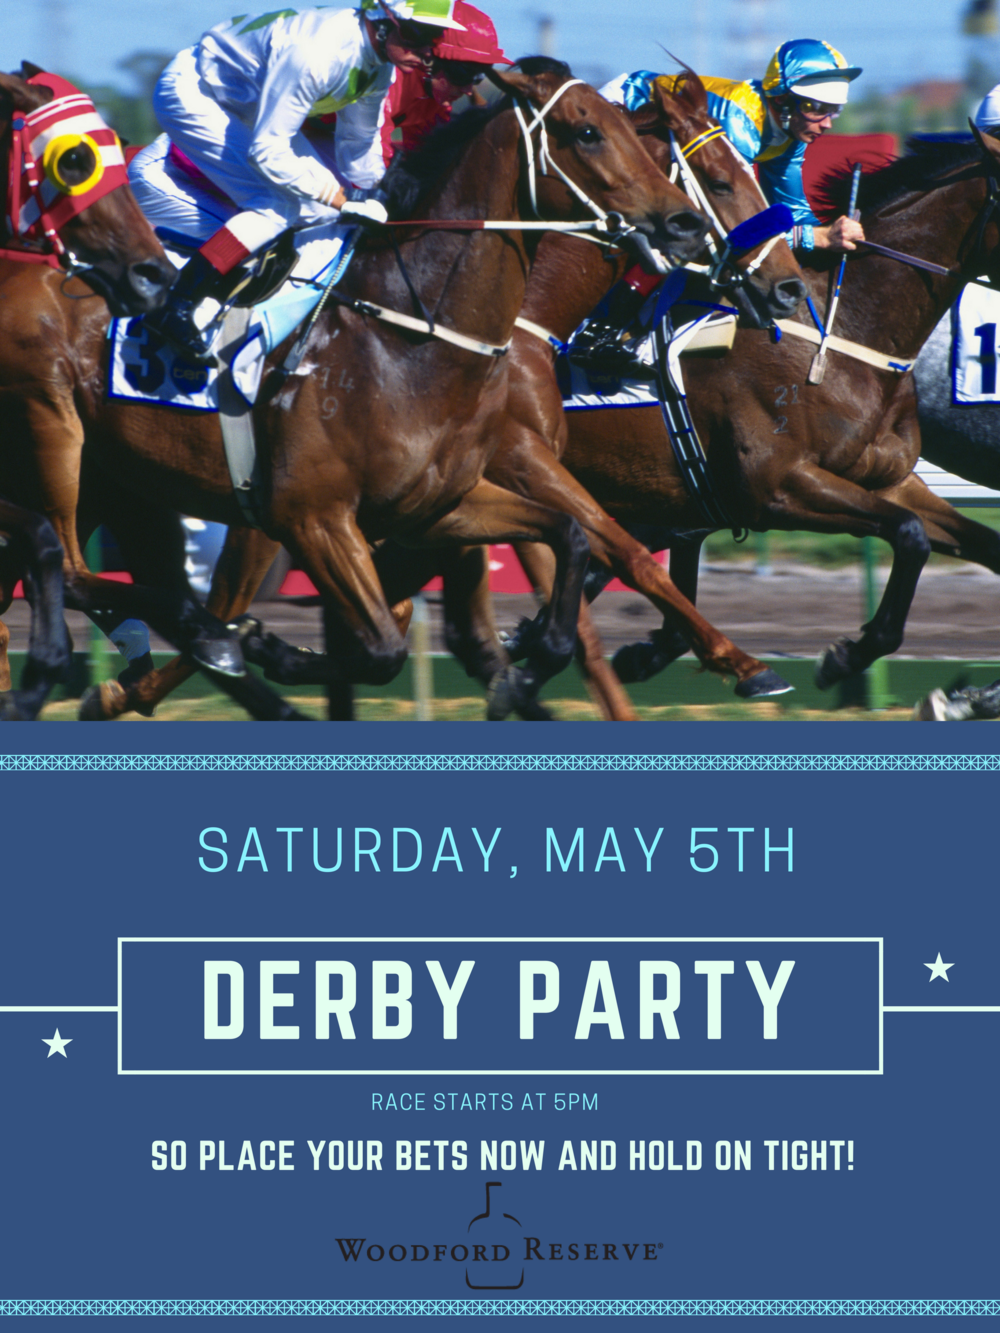 Blue Monochrome Horse Racing Poster.png